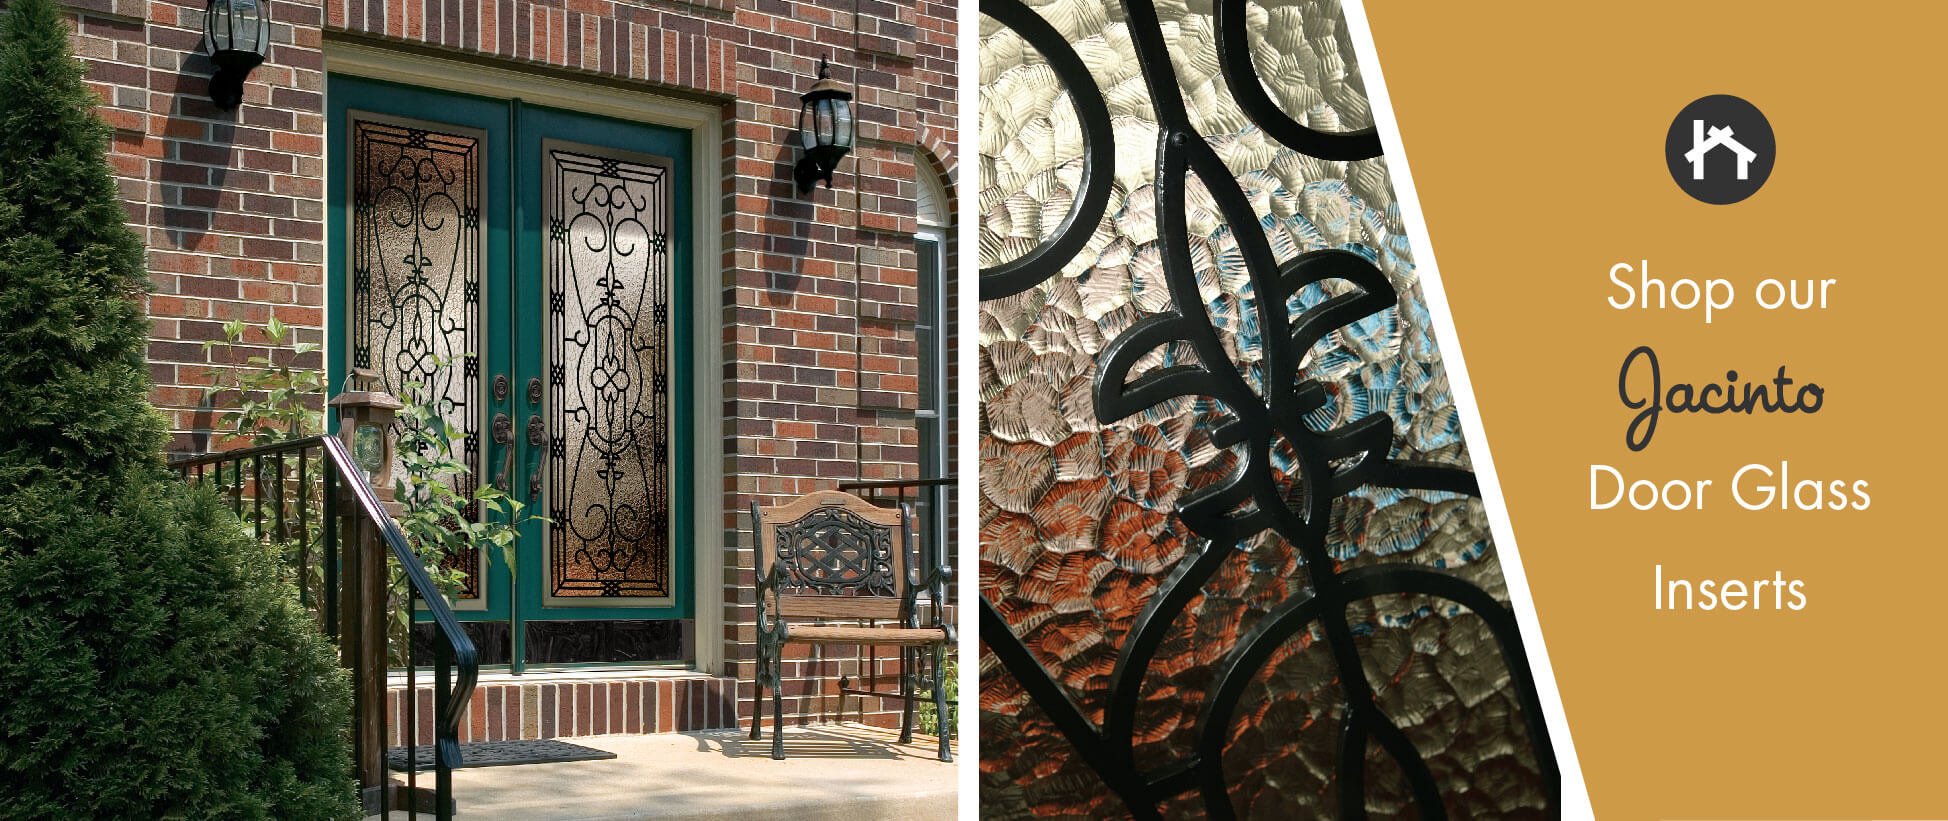 French Style Door Glass Inserts With Wrought Iron Odl Jacinto